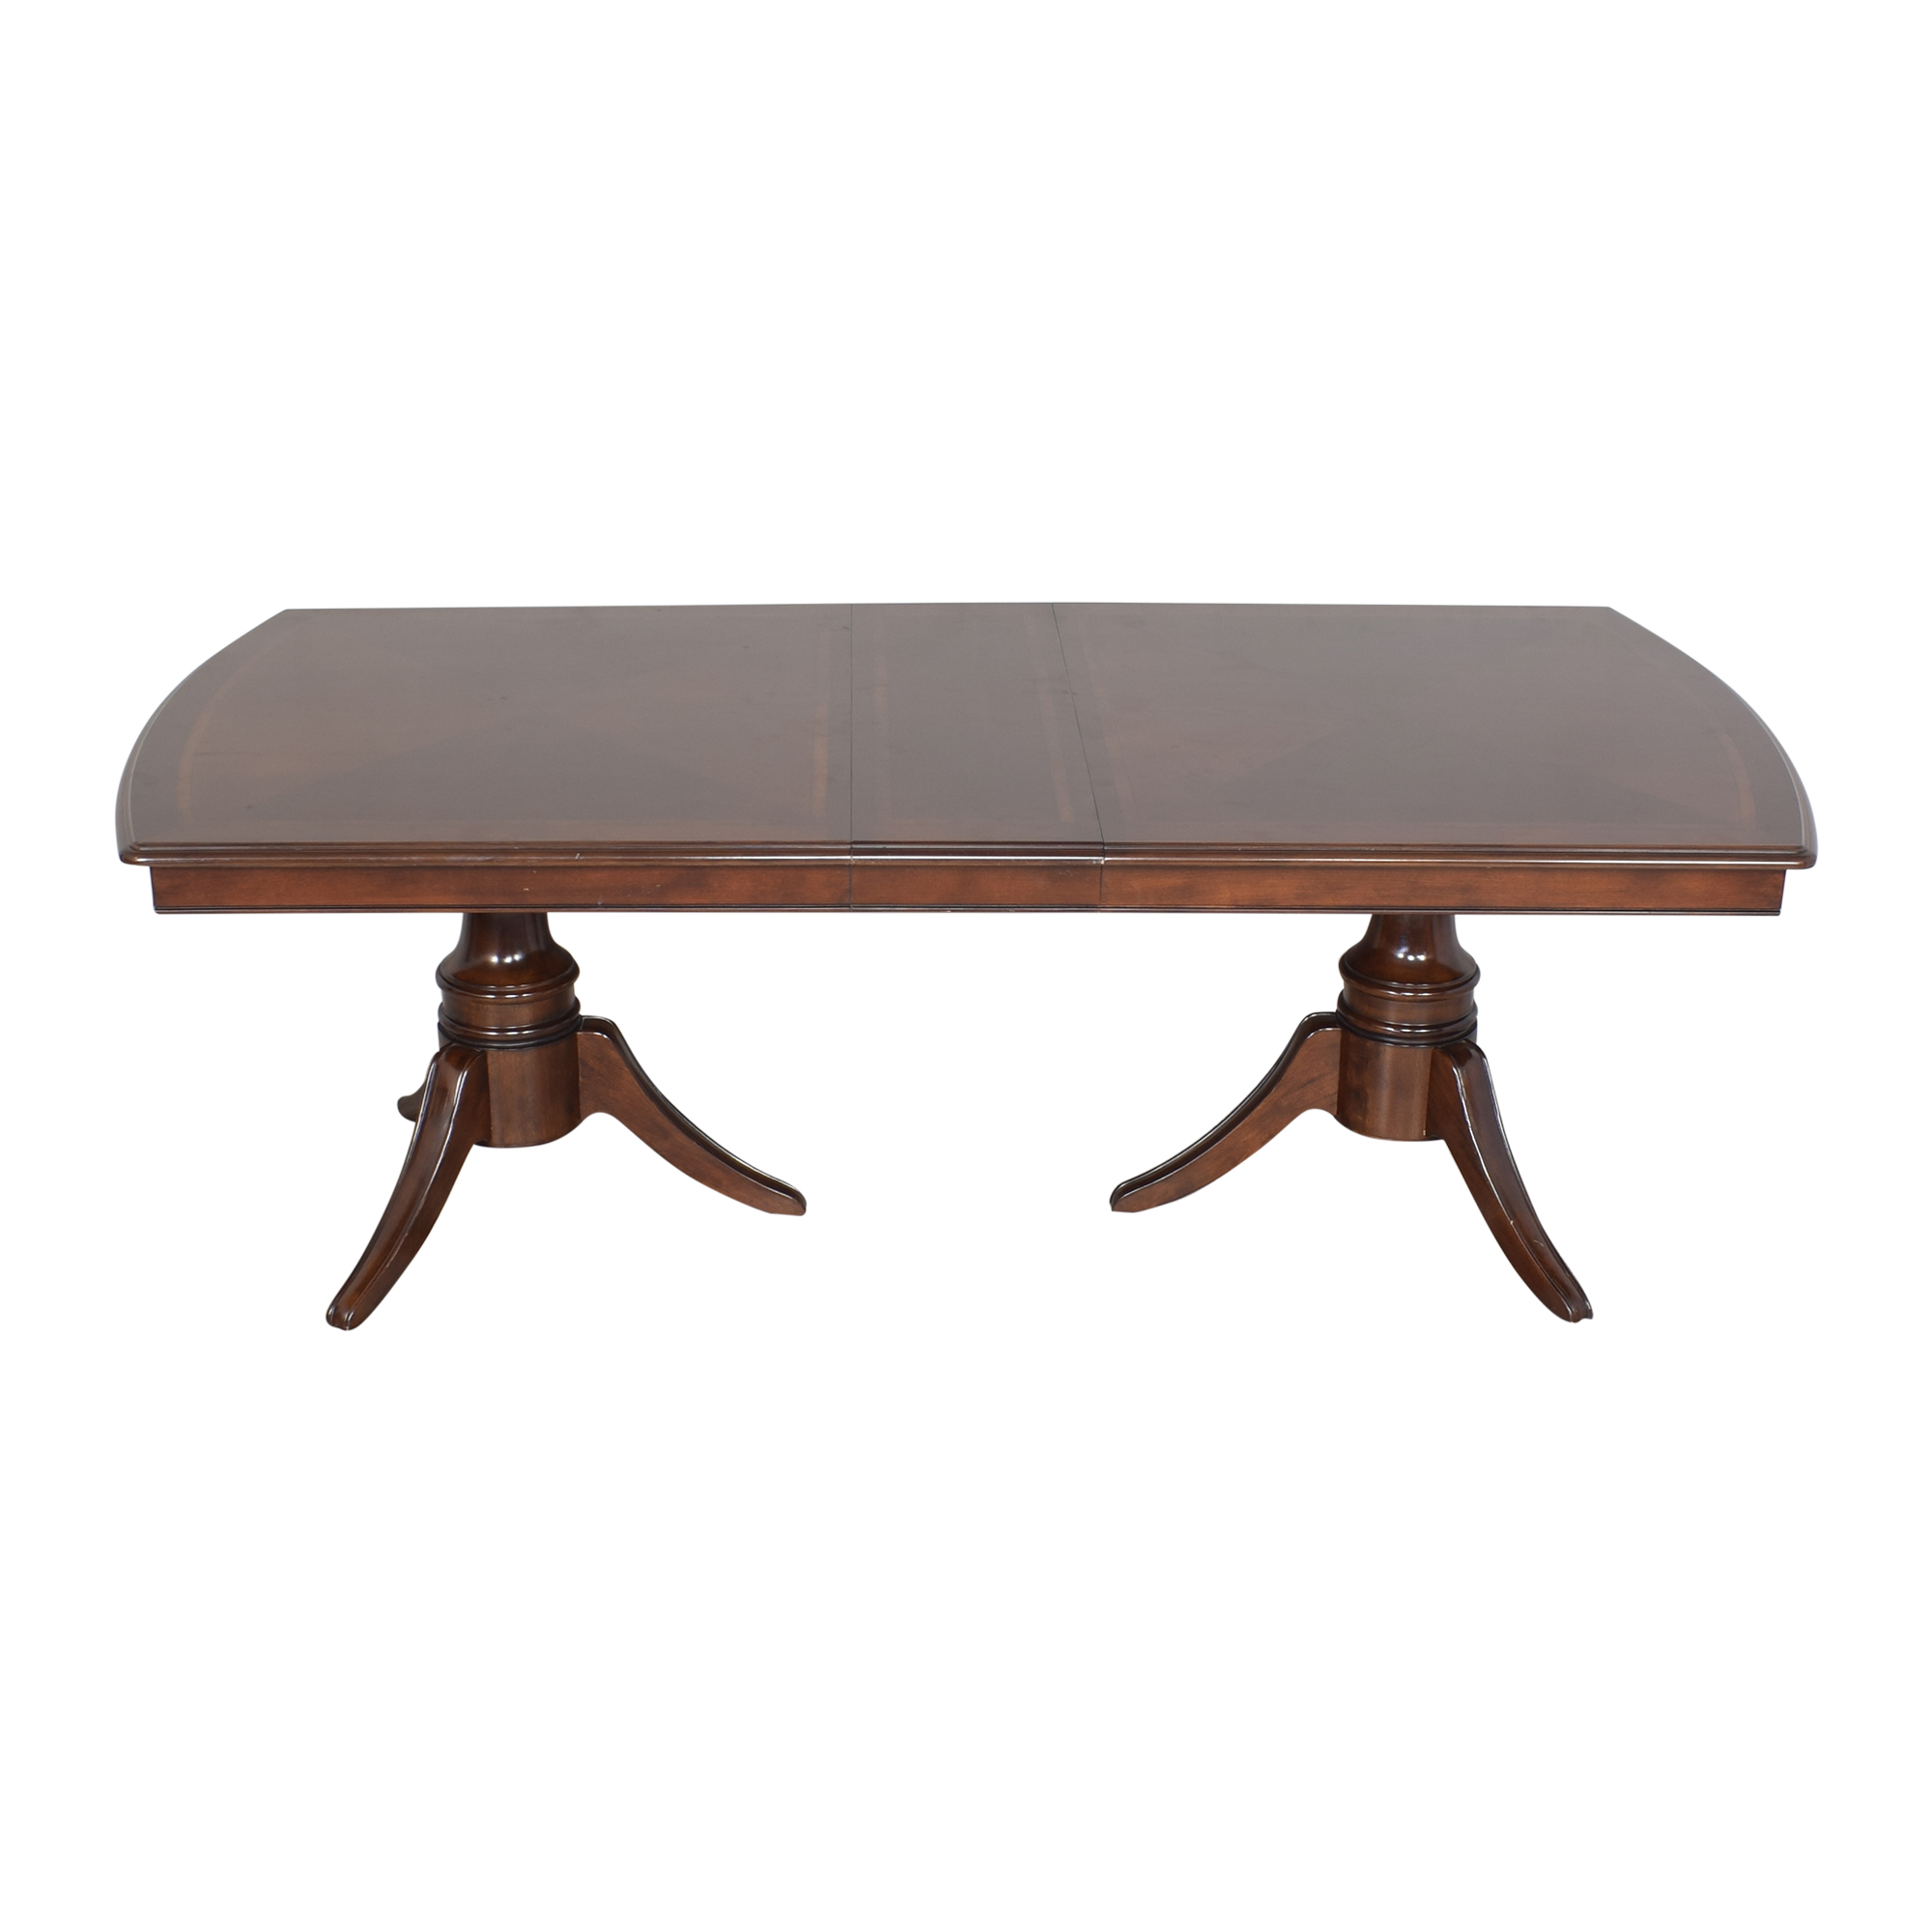 Raymour & Flanigan Raymour & Flanigan Double Pedestal Extendable Dining Table pa